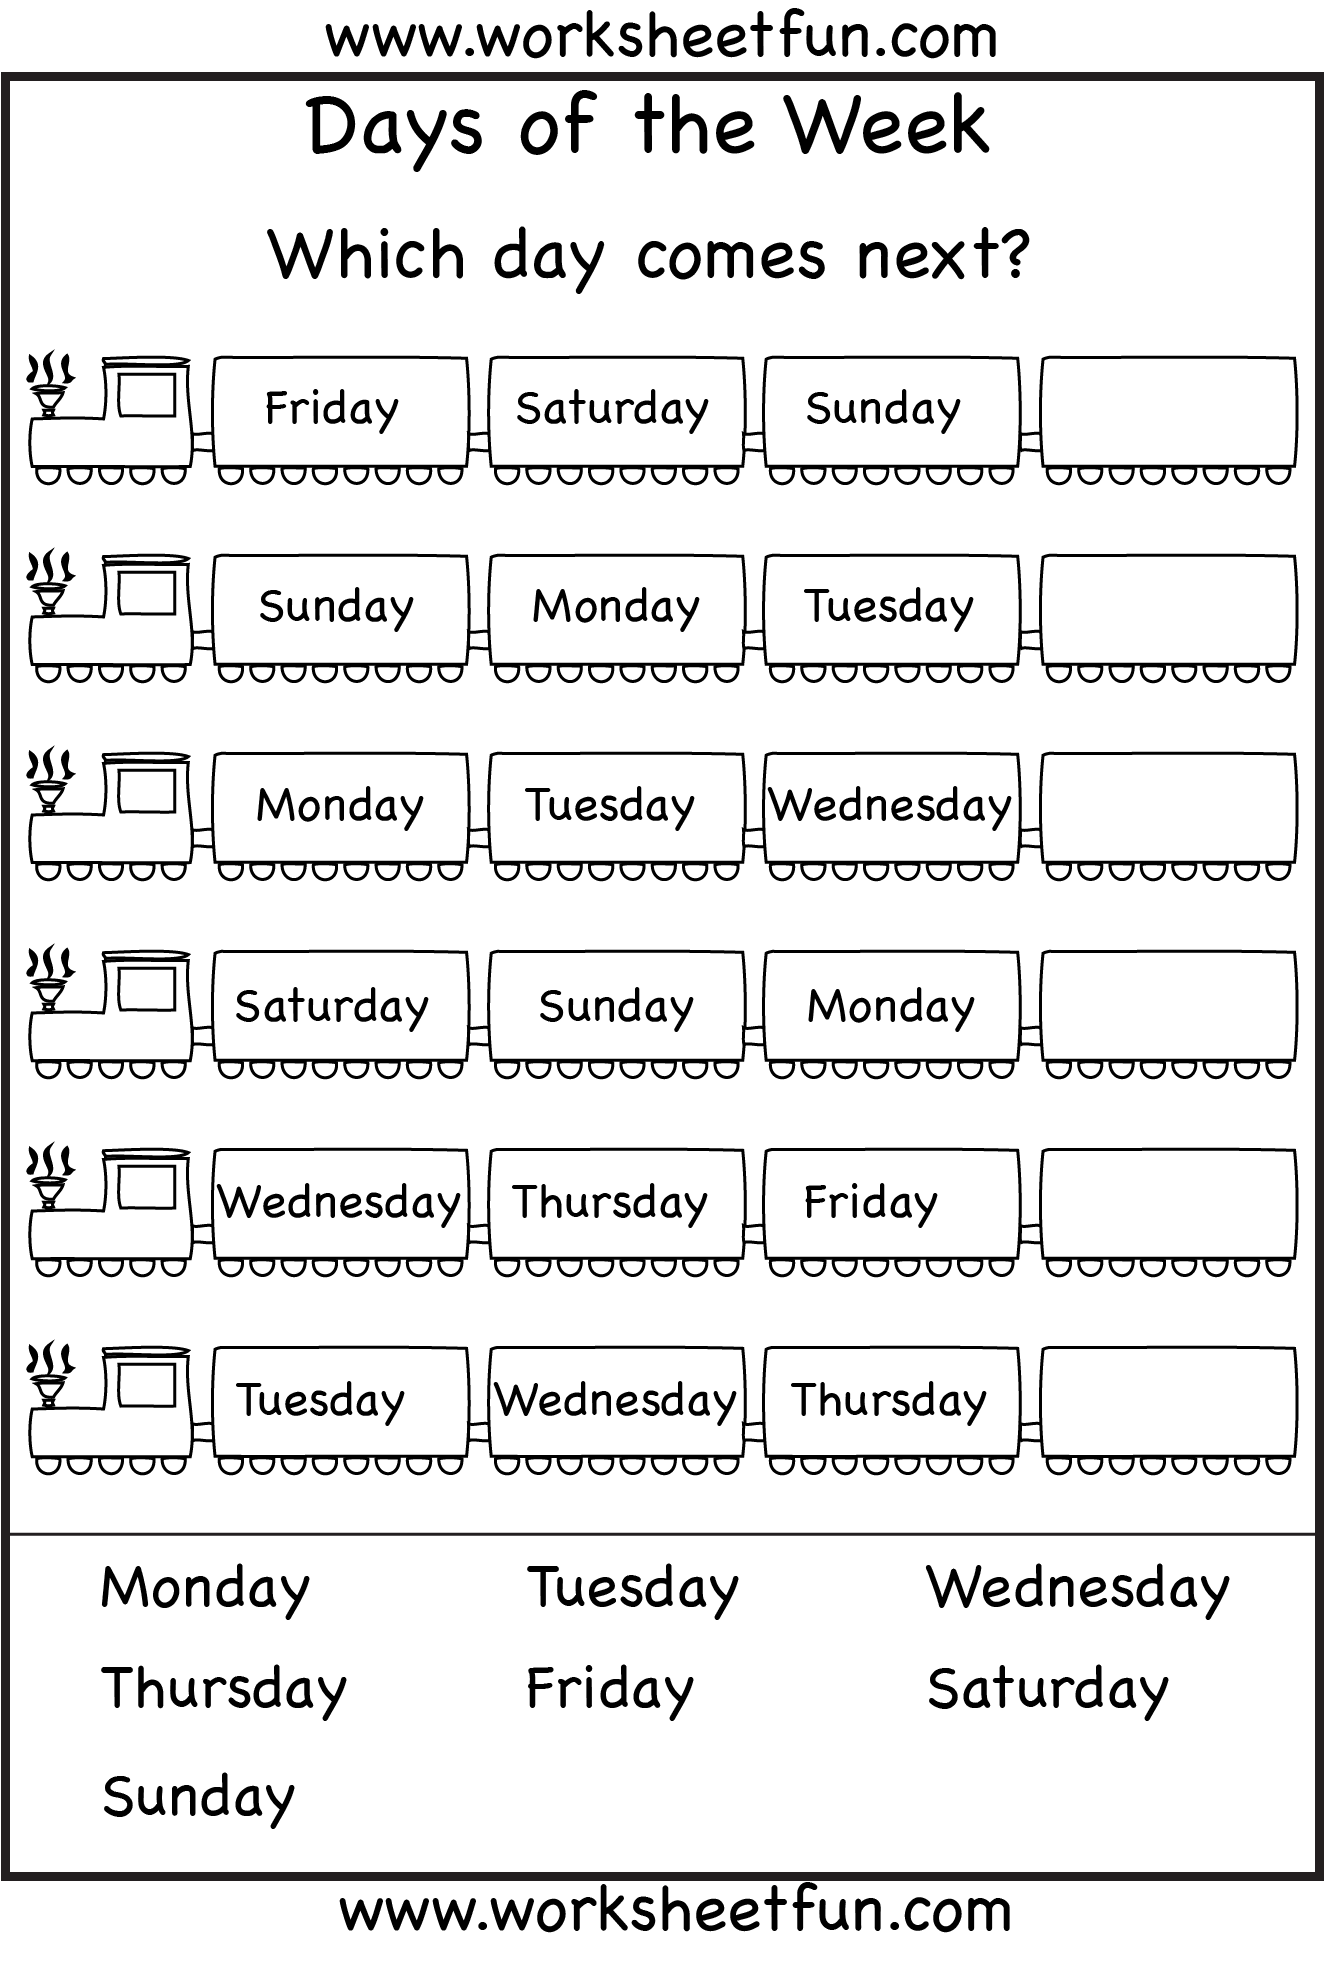 Days Of The Week Worksheets 1a Eval With Images